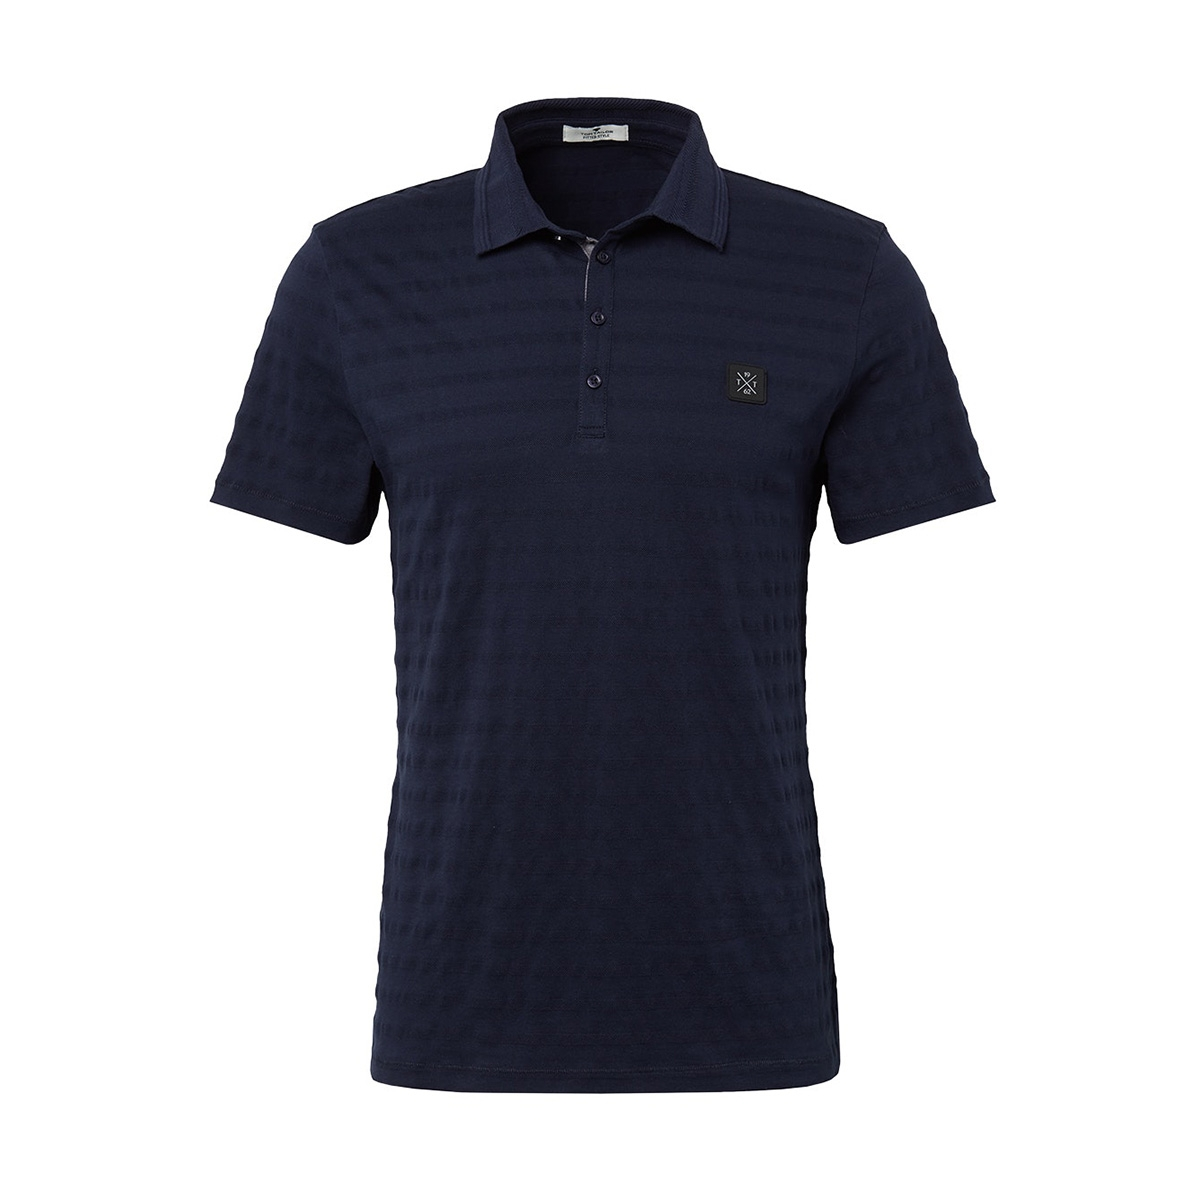 1008970xx10 tom tailor polo 10690